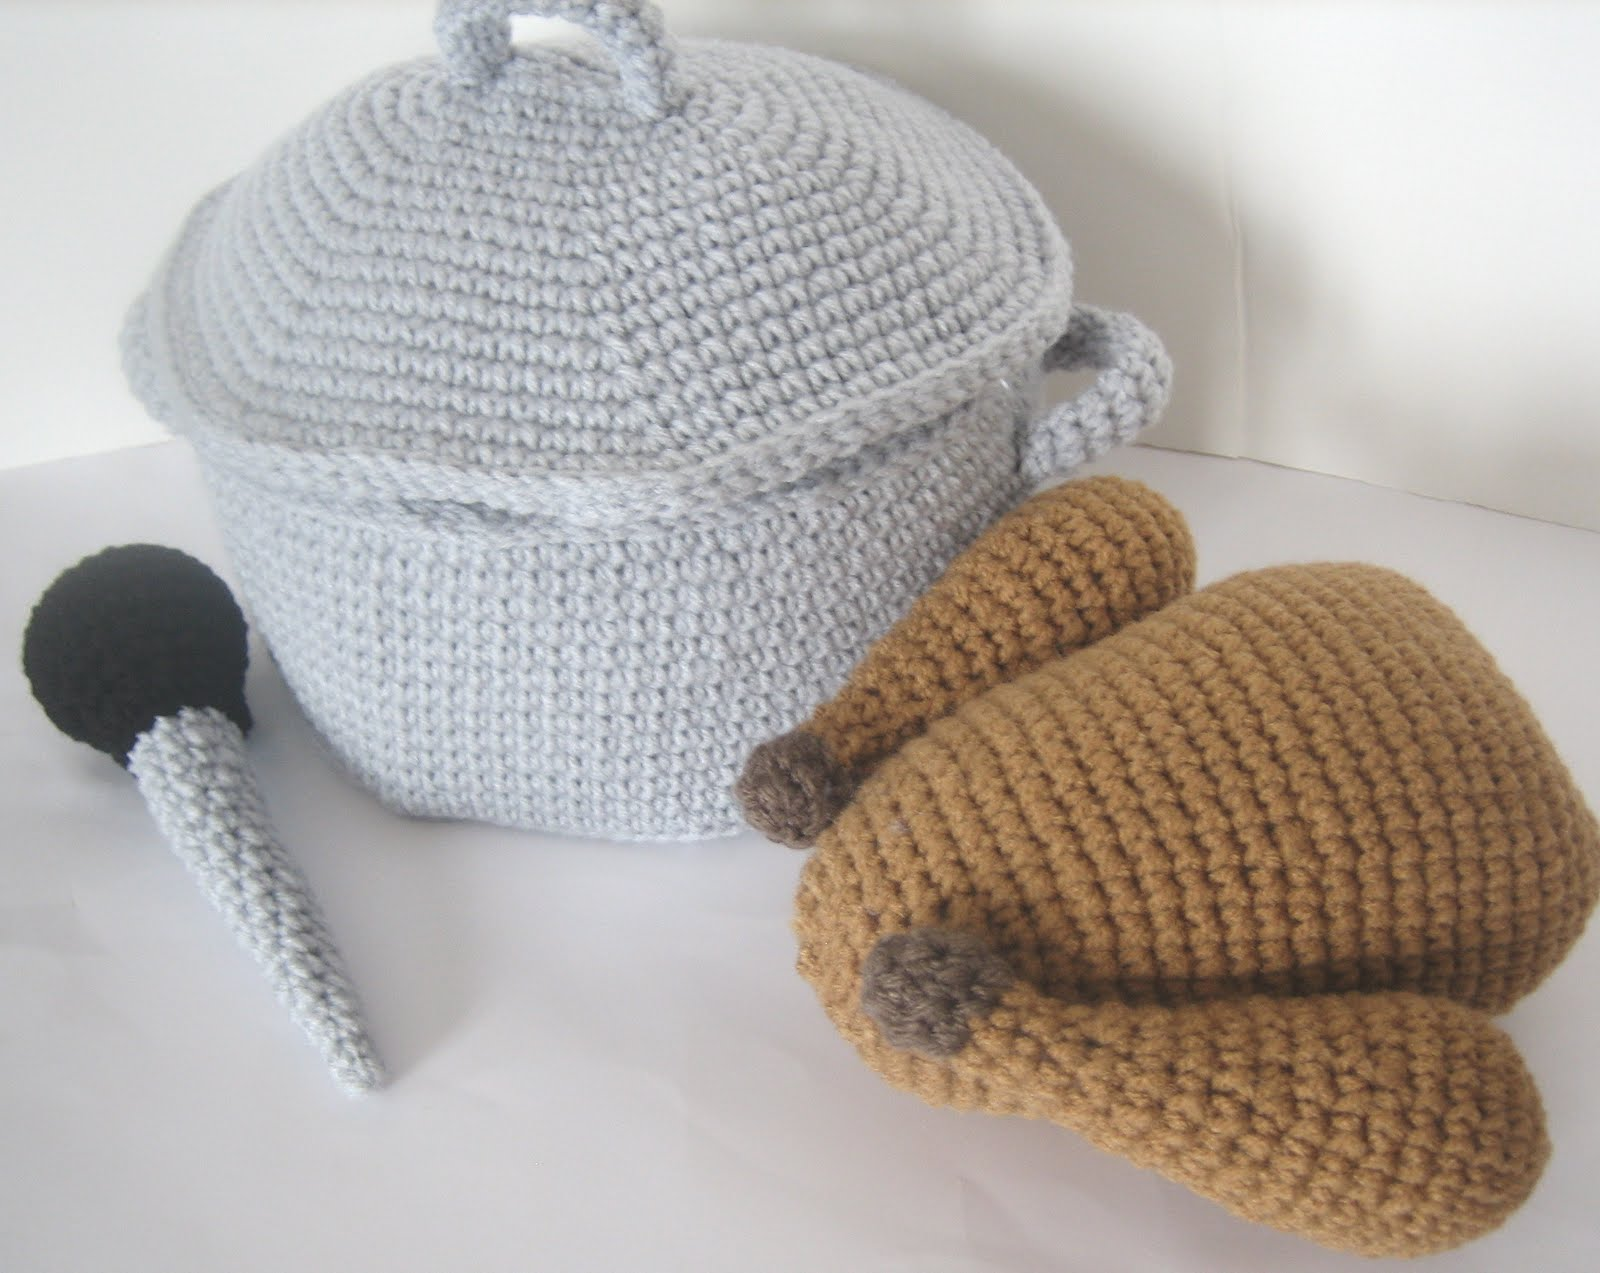 New Crochet Pattern: Turkey with Roasting Pan